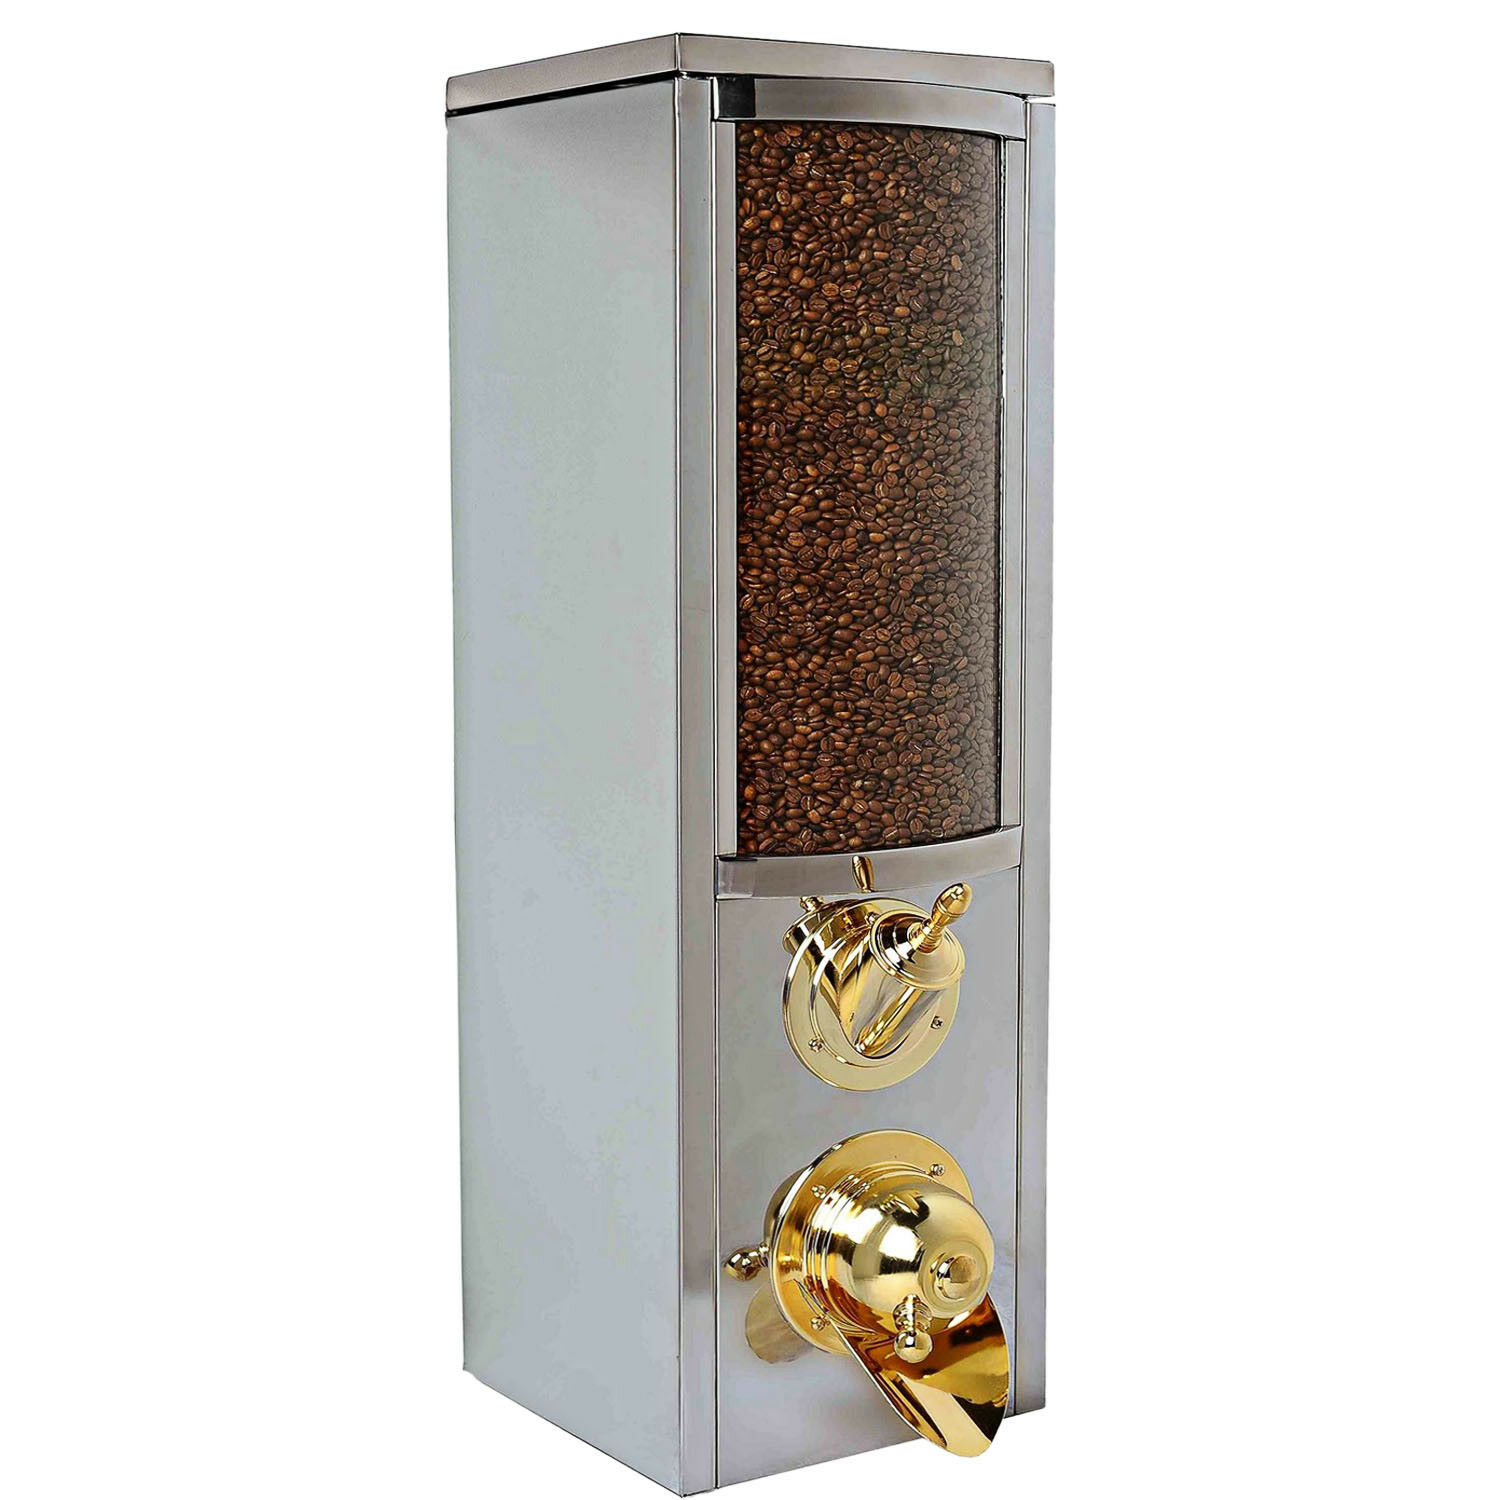 New Model Best Coffee Bean Dispenser Stainless Steel, 85 H x 25 D x 25 W